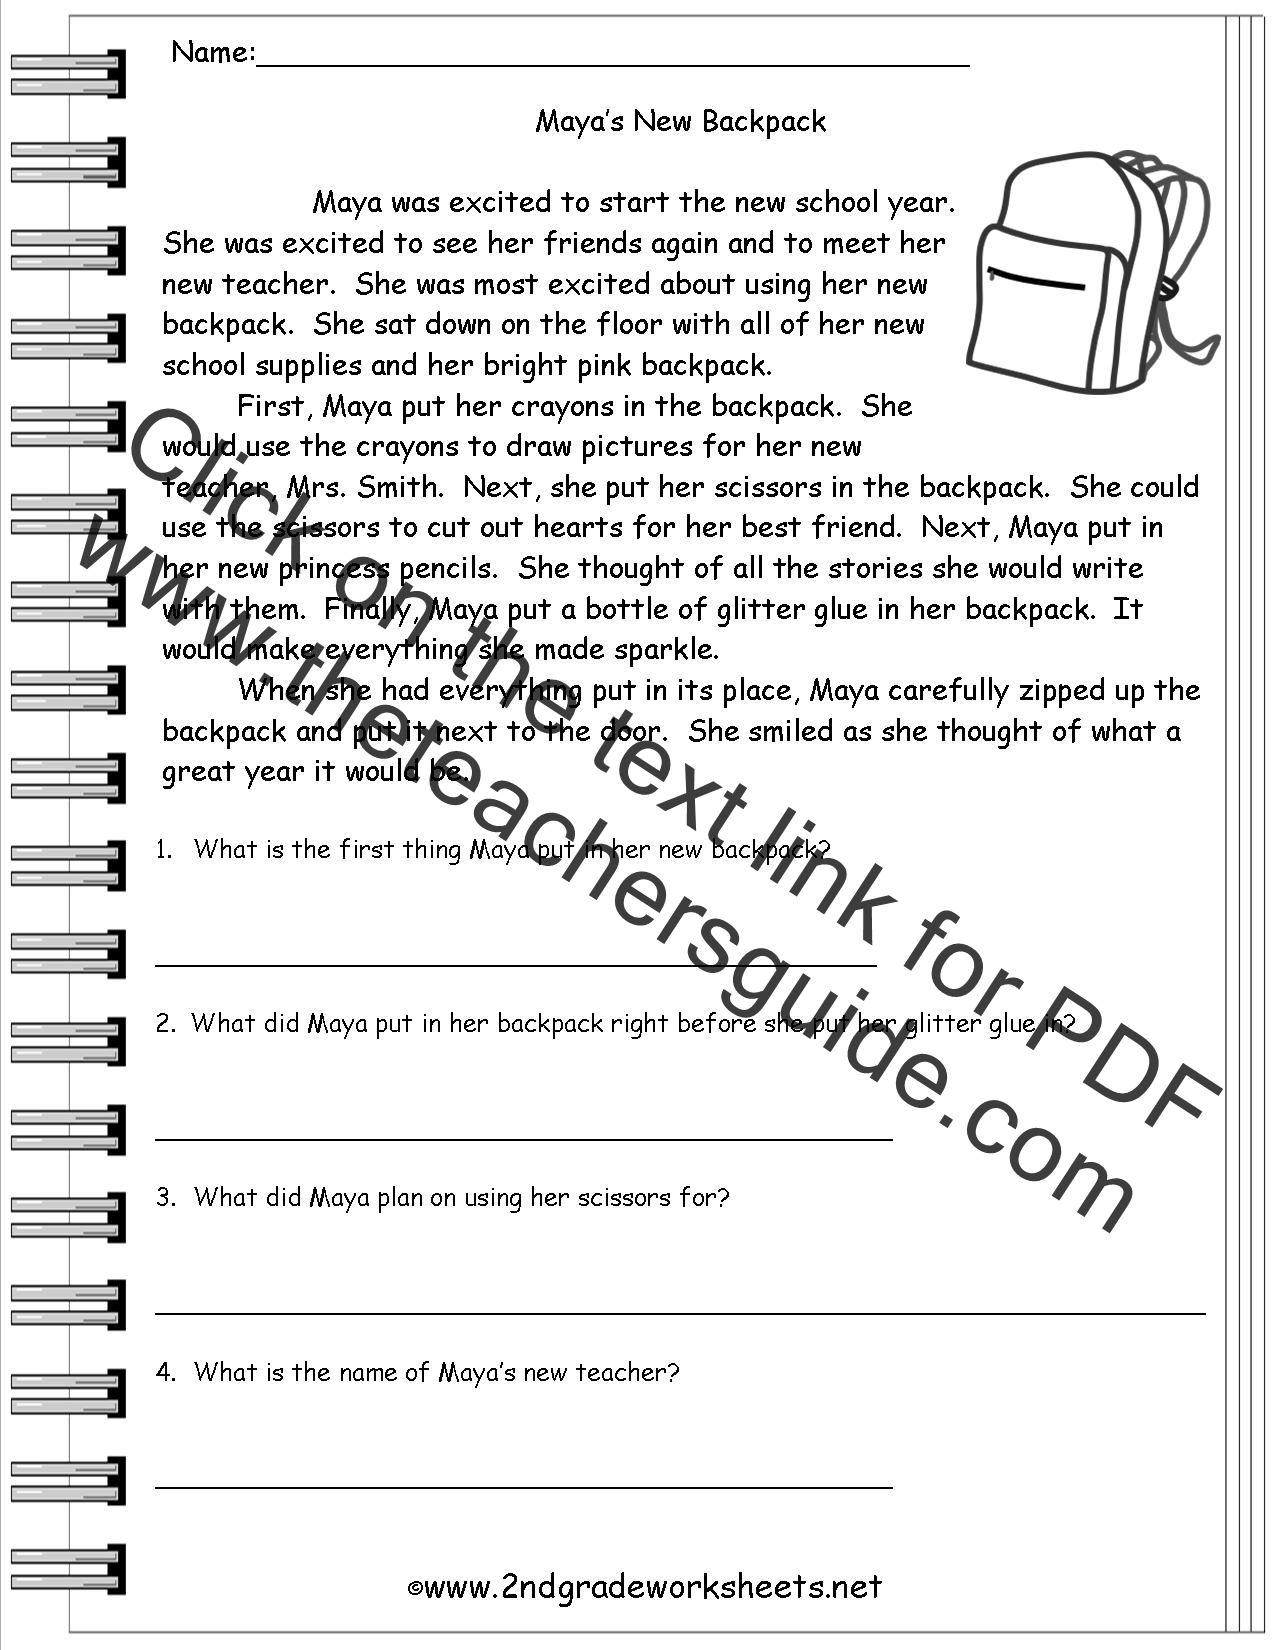 Worksheet Printable Comprehension Passages For Grade 3 reading worksheeets literature worksheets